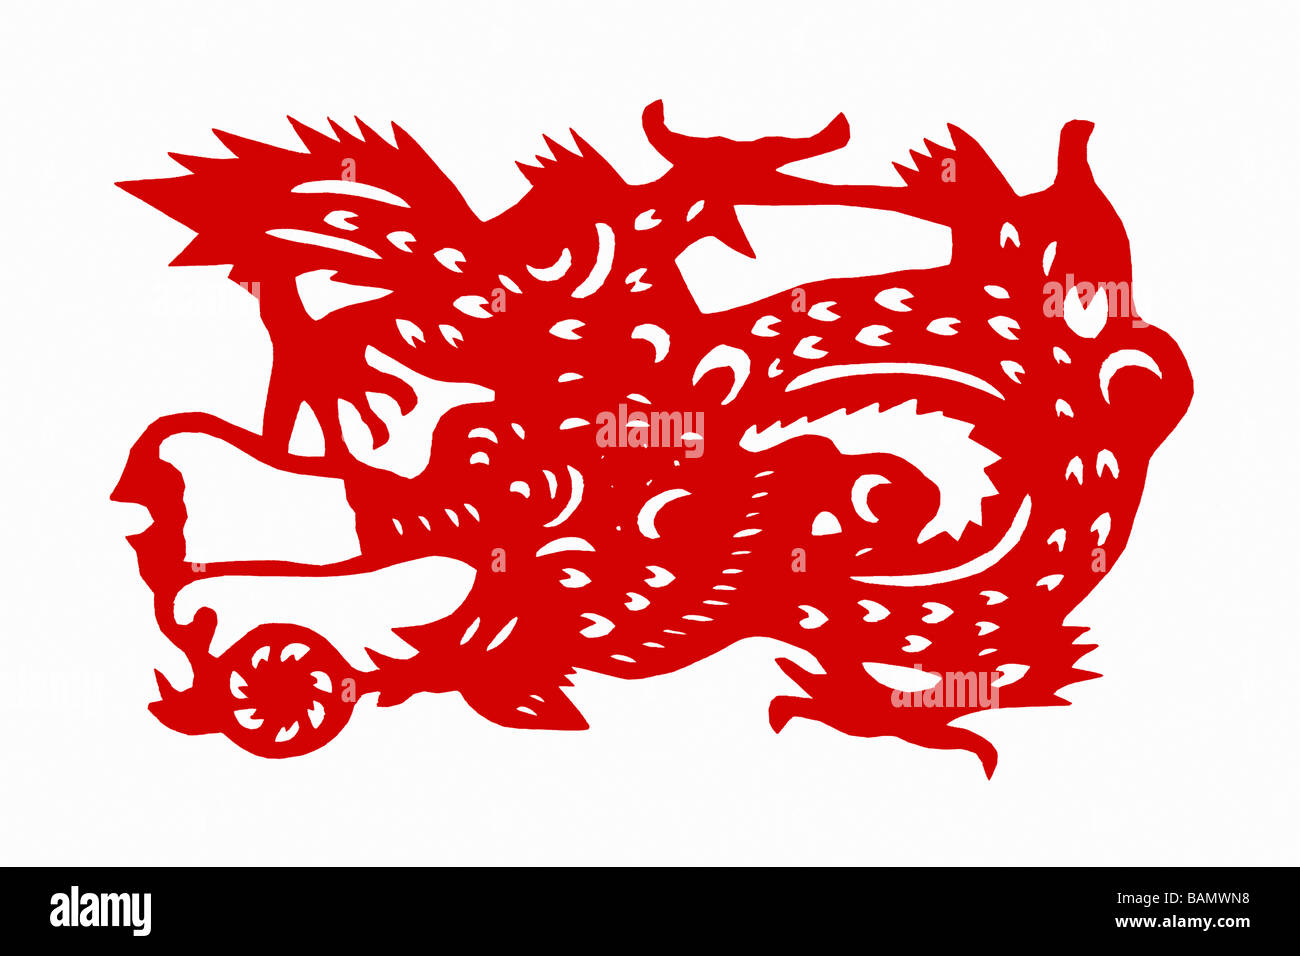 Traditional chinese illustration of dragon bringing good fortune traditional chinese illustration of dragon bringing good fortune biocorpaavc Choice Image